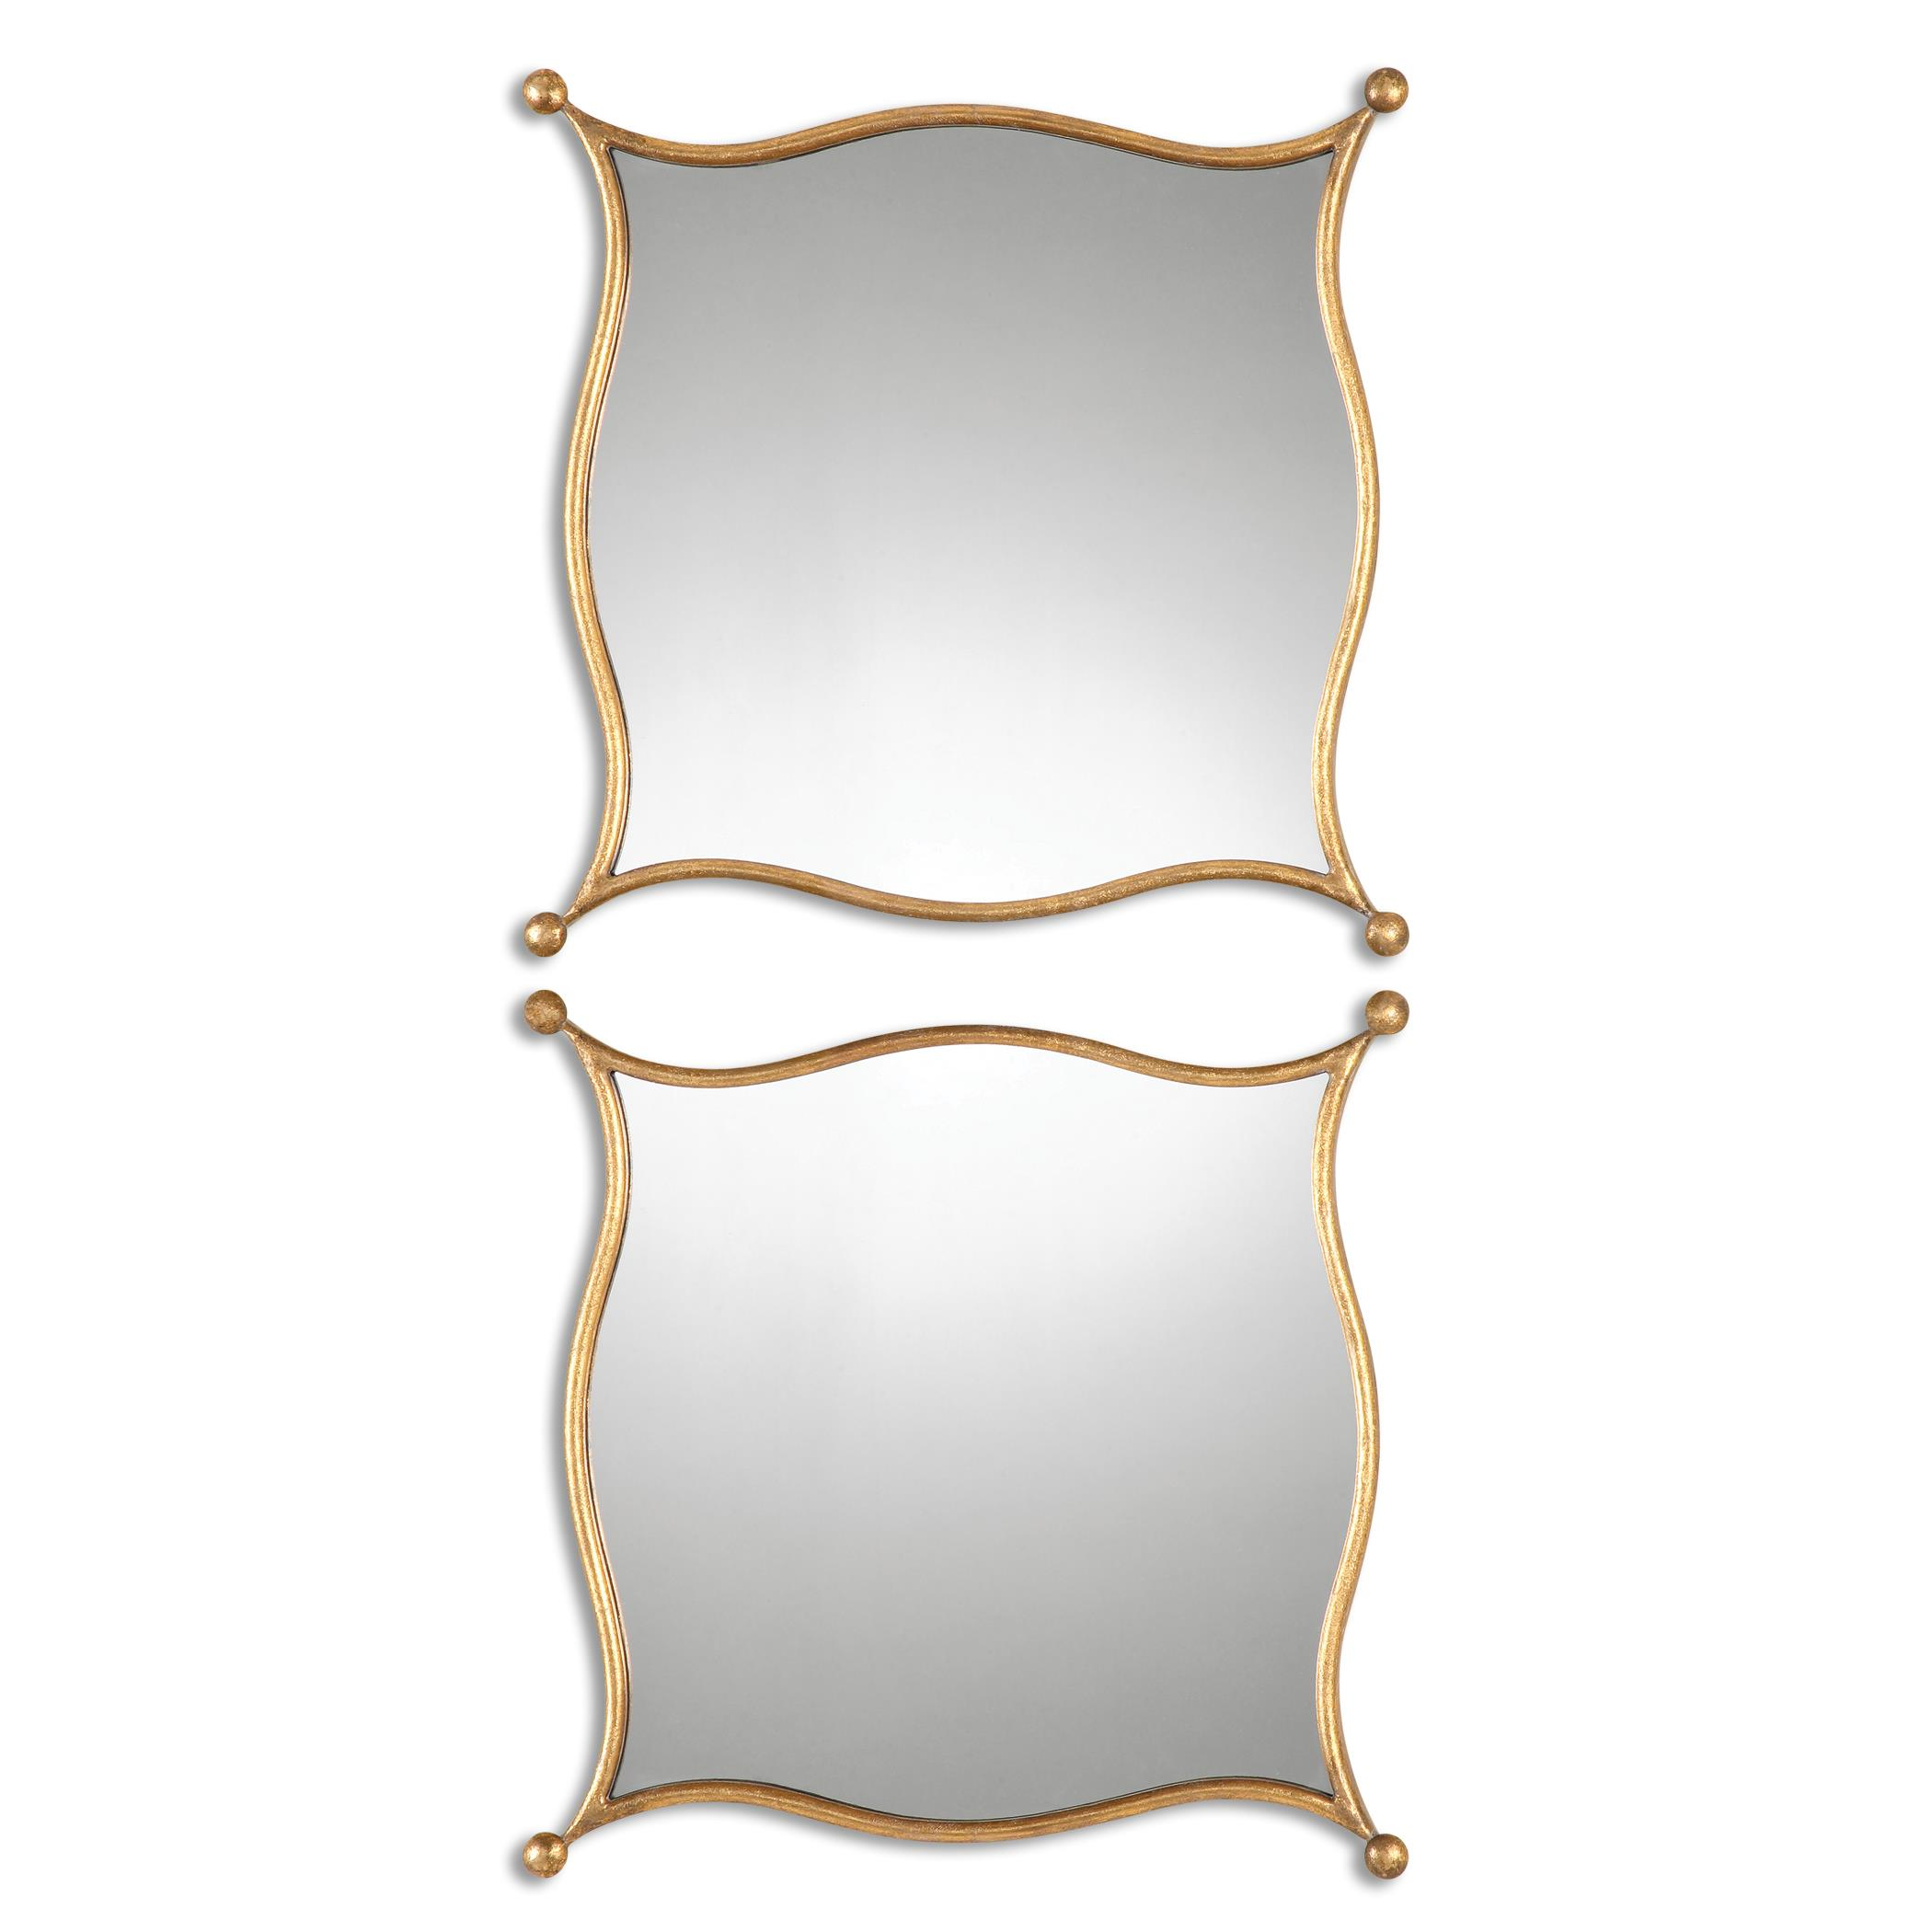 Uttermost Mirrors Sibley Gold Mirrors, S/2 - Item Number: 12902